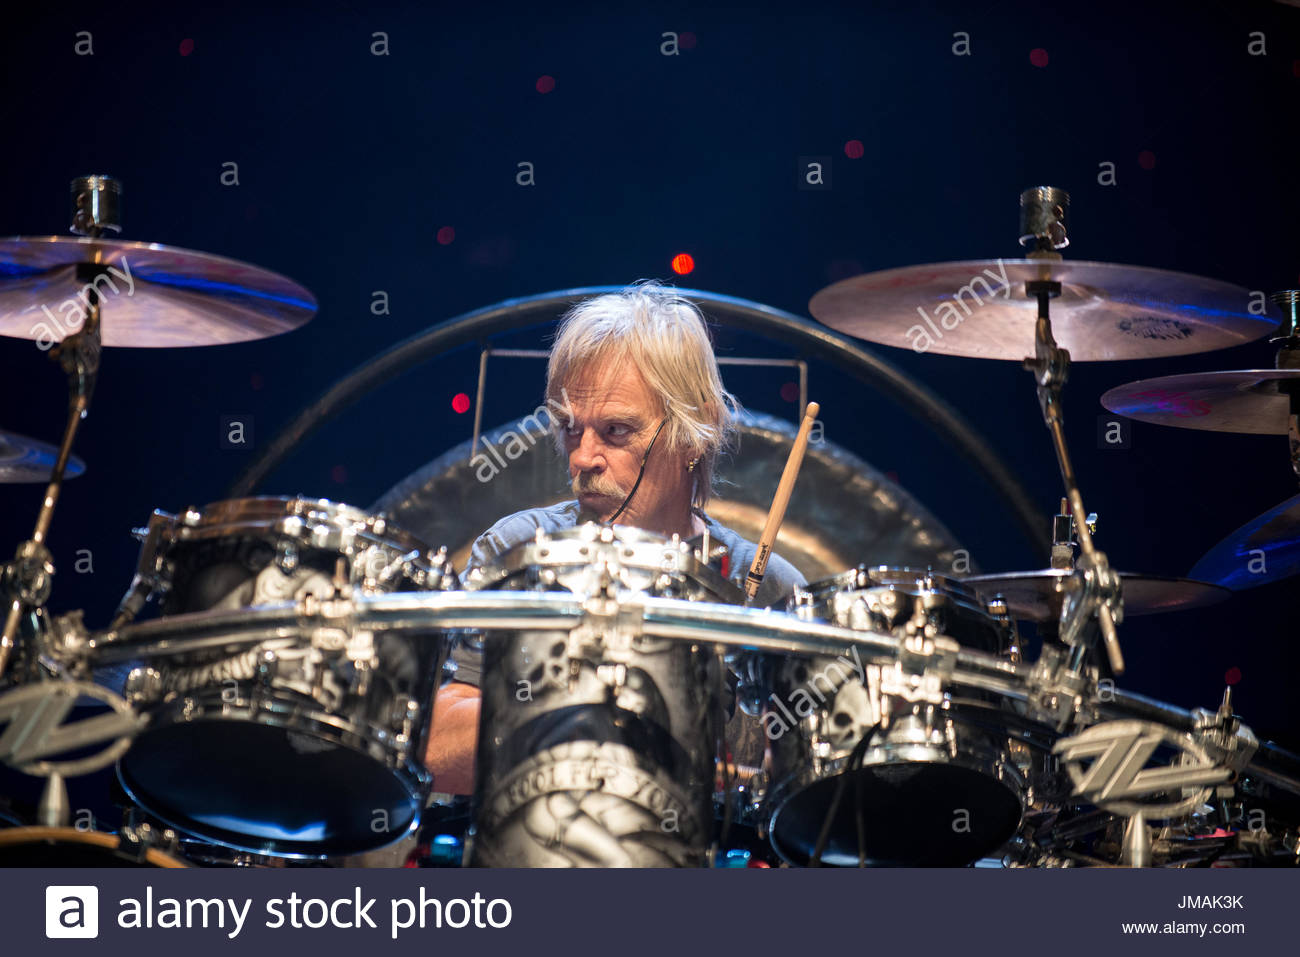 Manchester, UK. 25th July, 2017. ZZ Top Play Manchester Apollo 25th July As Part of Their Tonnage Tour Credit: Shayne Friessner-Day/Alamy Live News - Stock Image